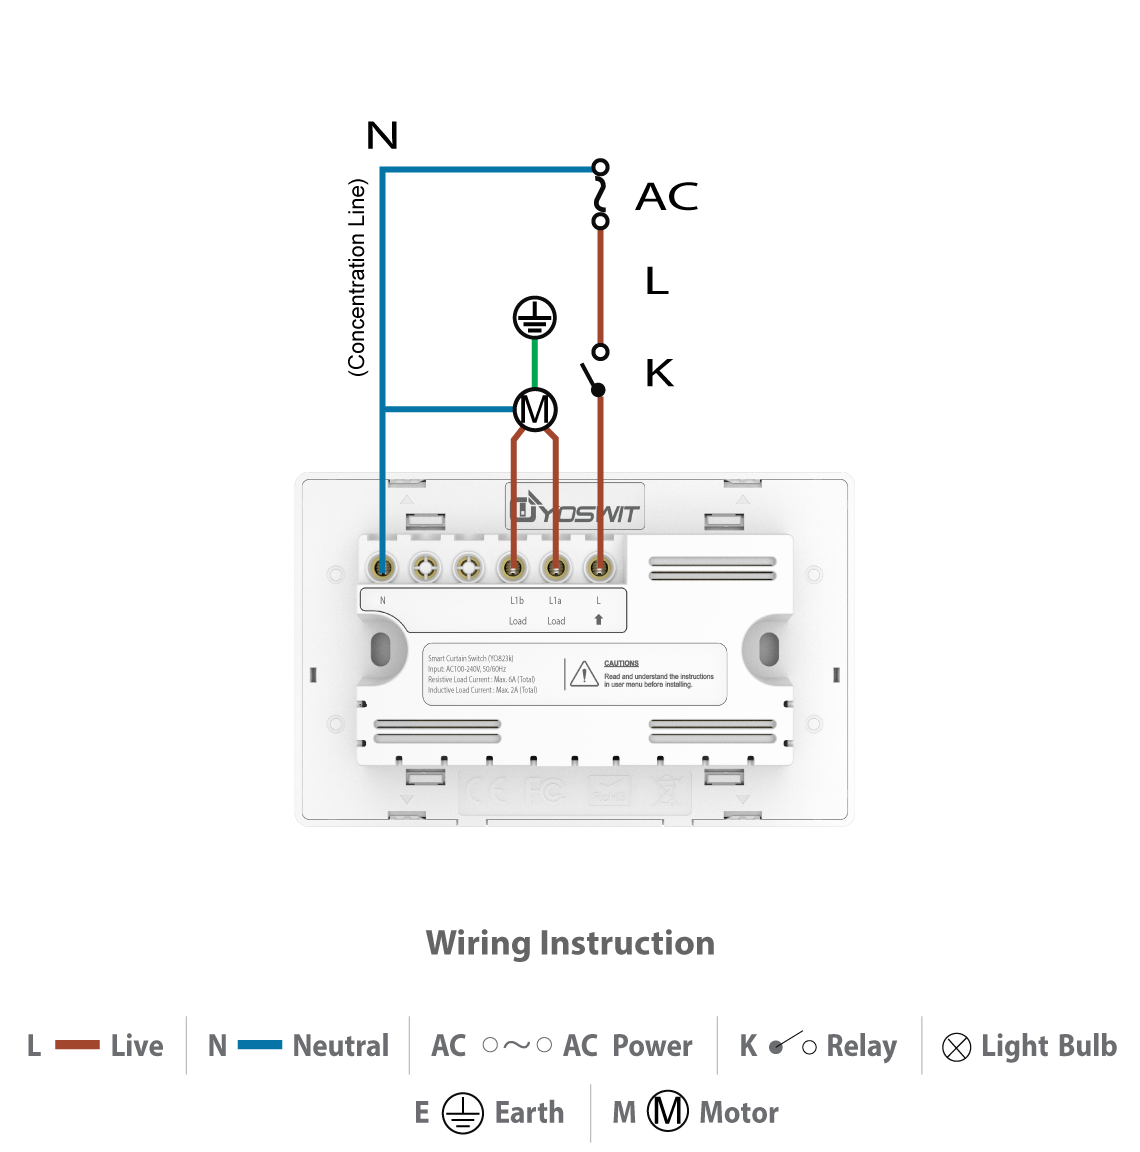 Smart Roller Switch Socket 118 Home 2 Gang Receptacle Box Wiring Diagram Failure To Connect The Ground Wire Will Result In An Unsafe Installation That Could Lead Personal Injury